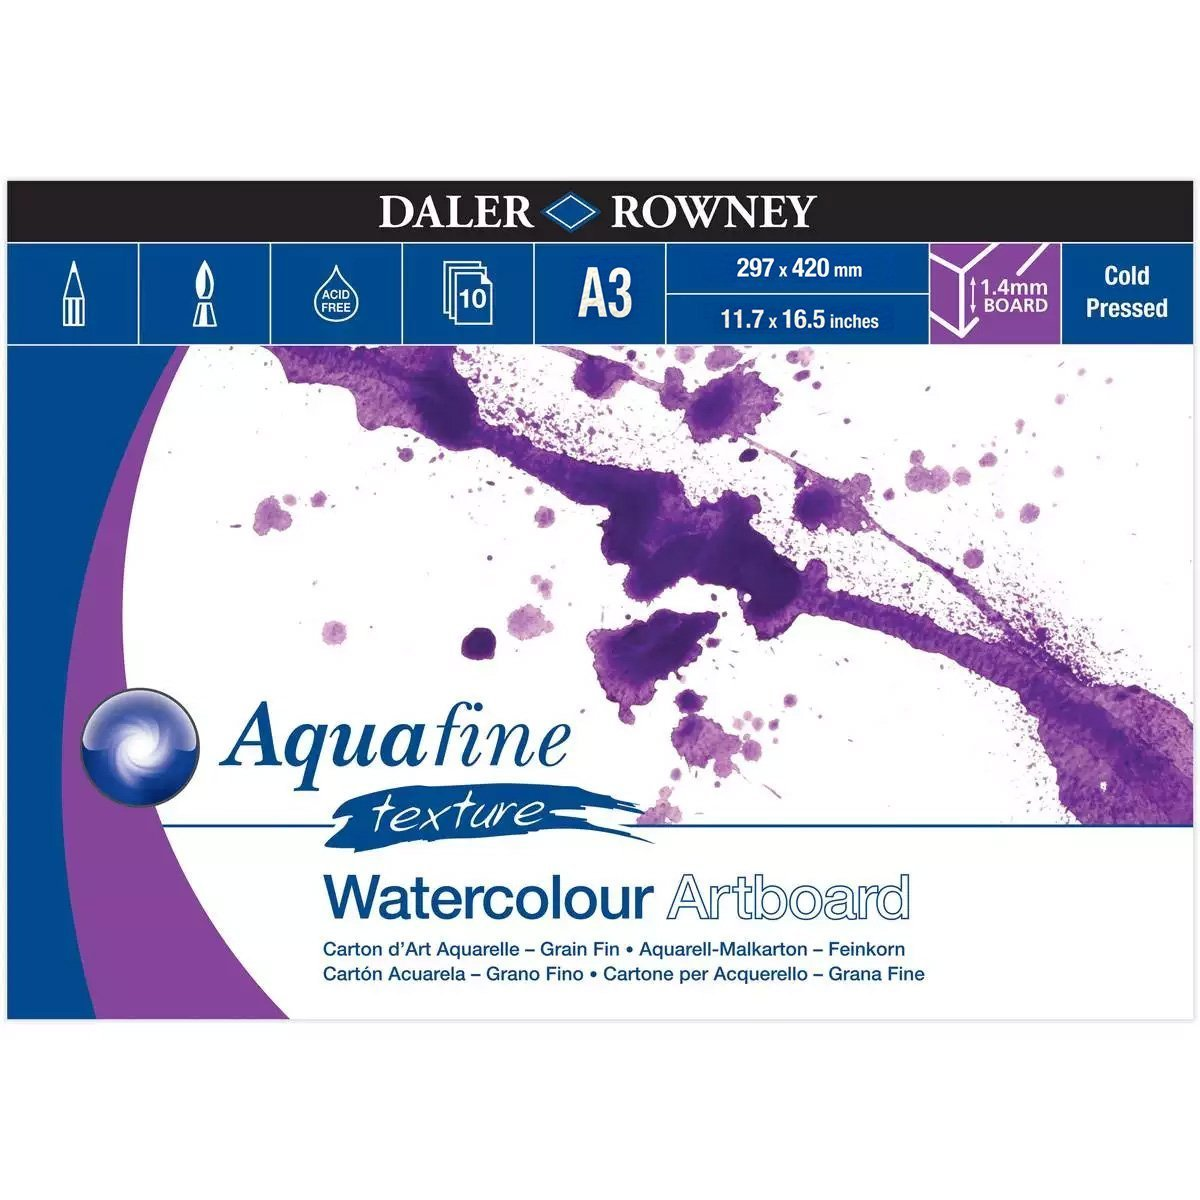 Daler Rowney Aquafine Watercolor Pad In A3/A4 size With 300gm